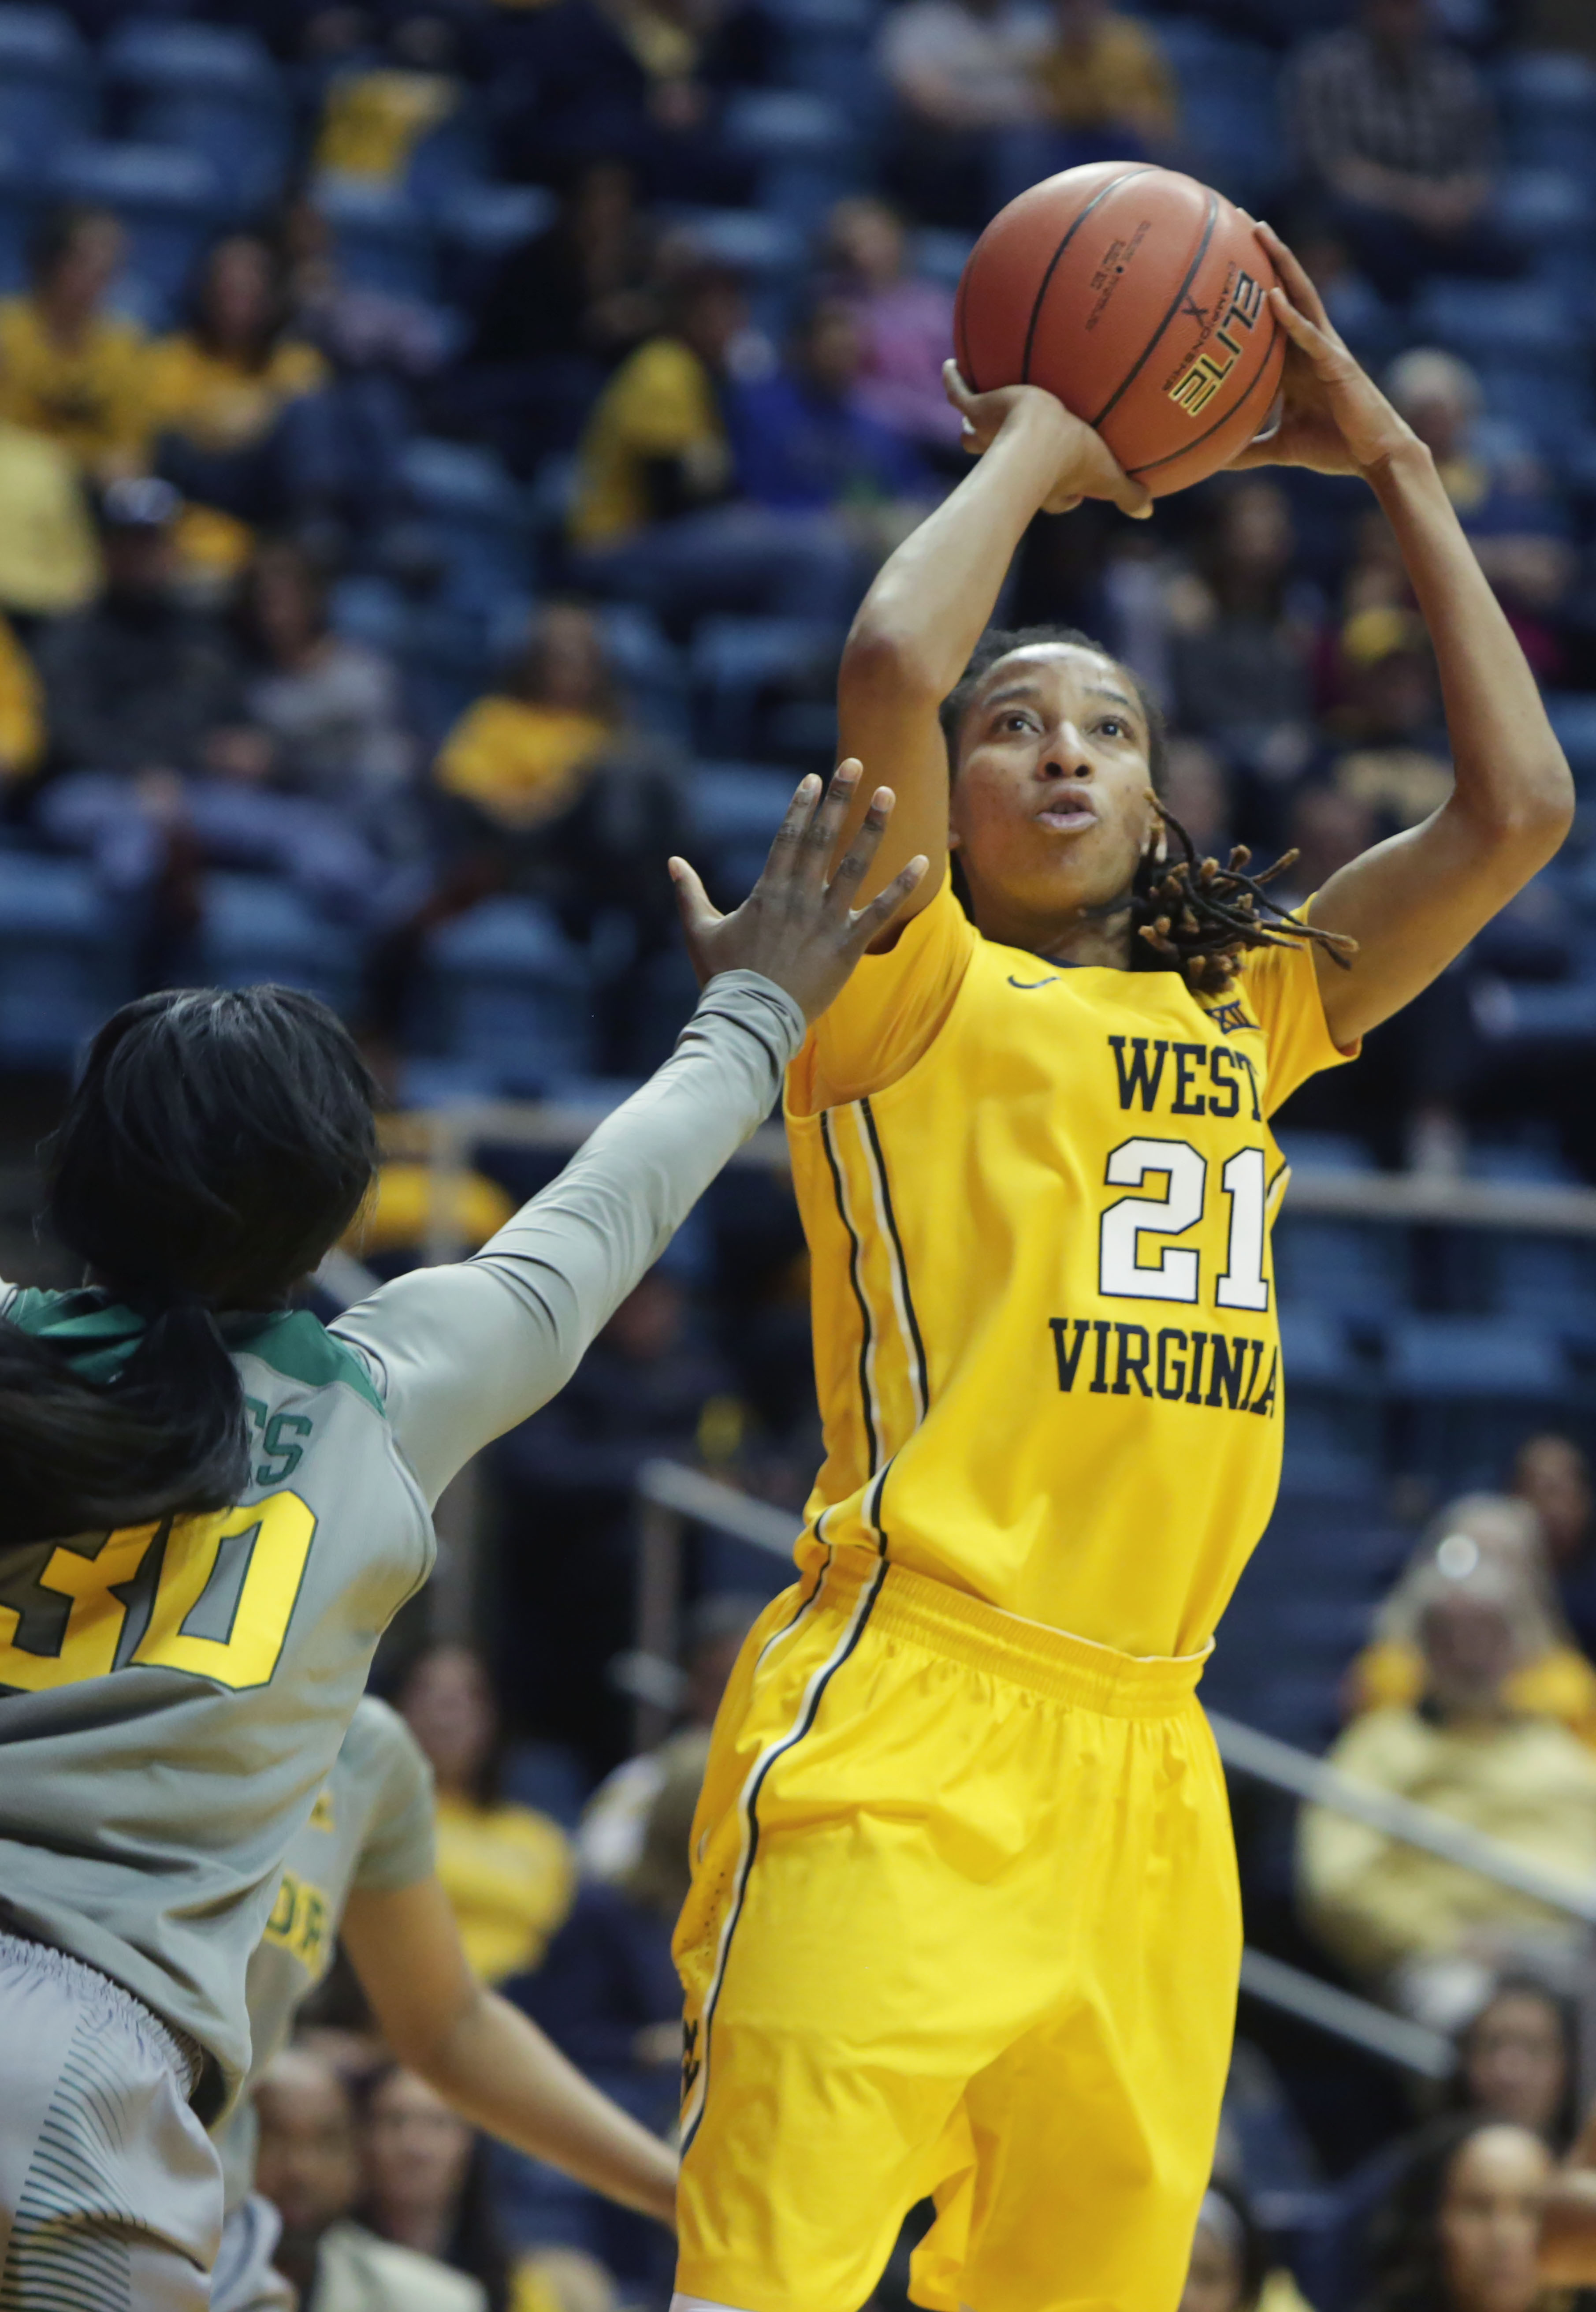 West Virginia guard Jessica Morton (21) takes a shot while being guarded by Baylor guard Alexis Jones (30) during the second half of an NCAA college basketball game, Saturday, Jan, 30, 2016, in Morgantown, W.Va. (AP Photo/Raymond Thompson)